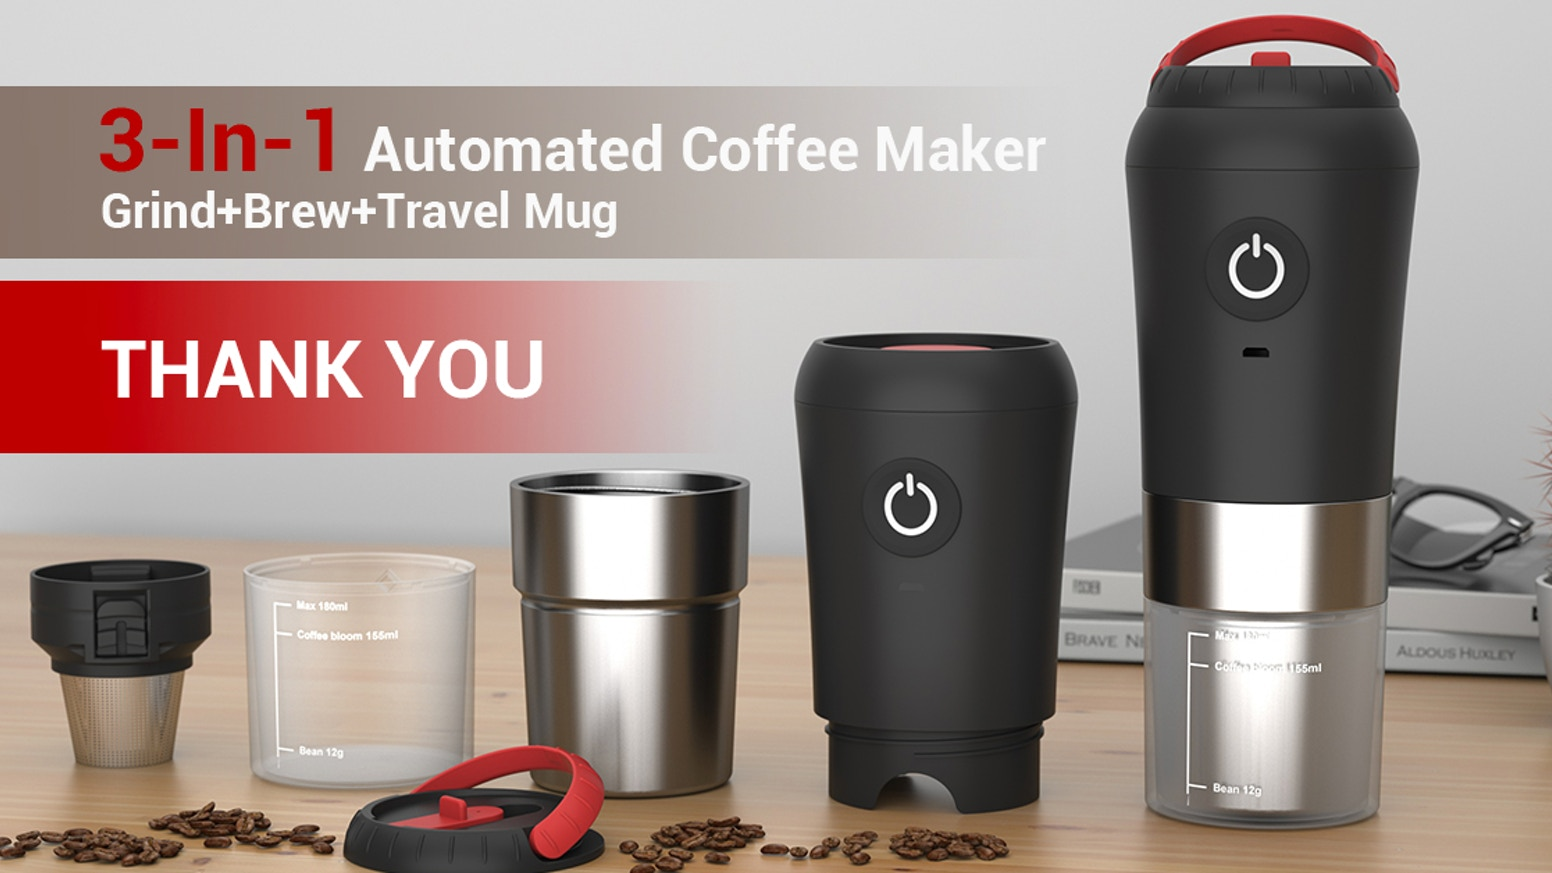 Rechargeable 3-in-1 coffee maker makes fresh ground coffee anywhere with one-touch auto-grind & brew & travel mug.